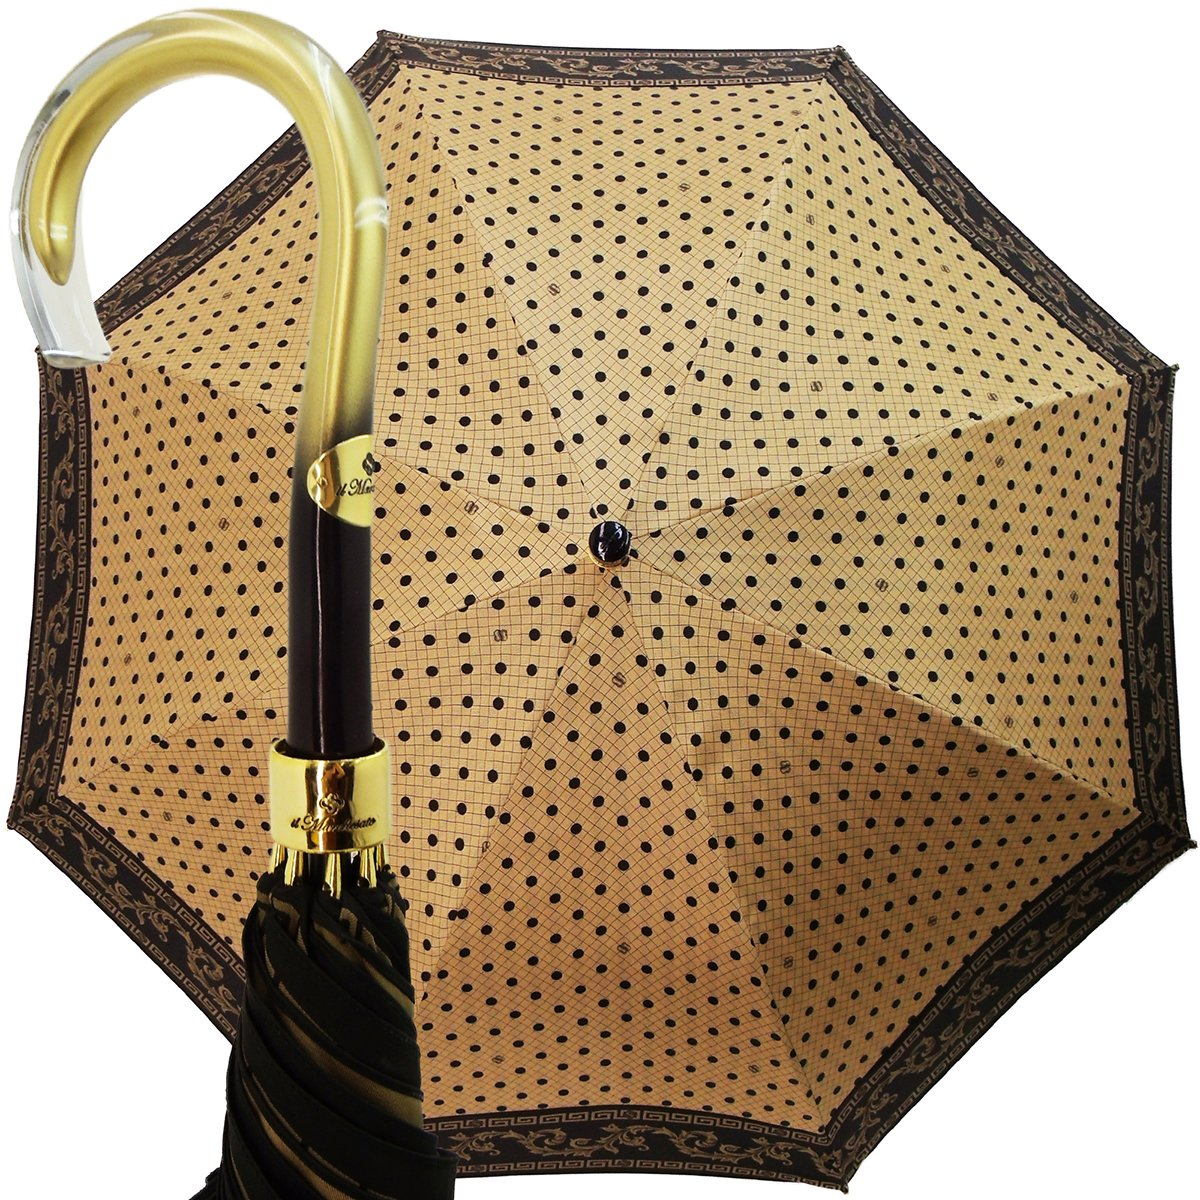 BEIGE POLKA DOT LADIES UMBRELLAS